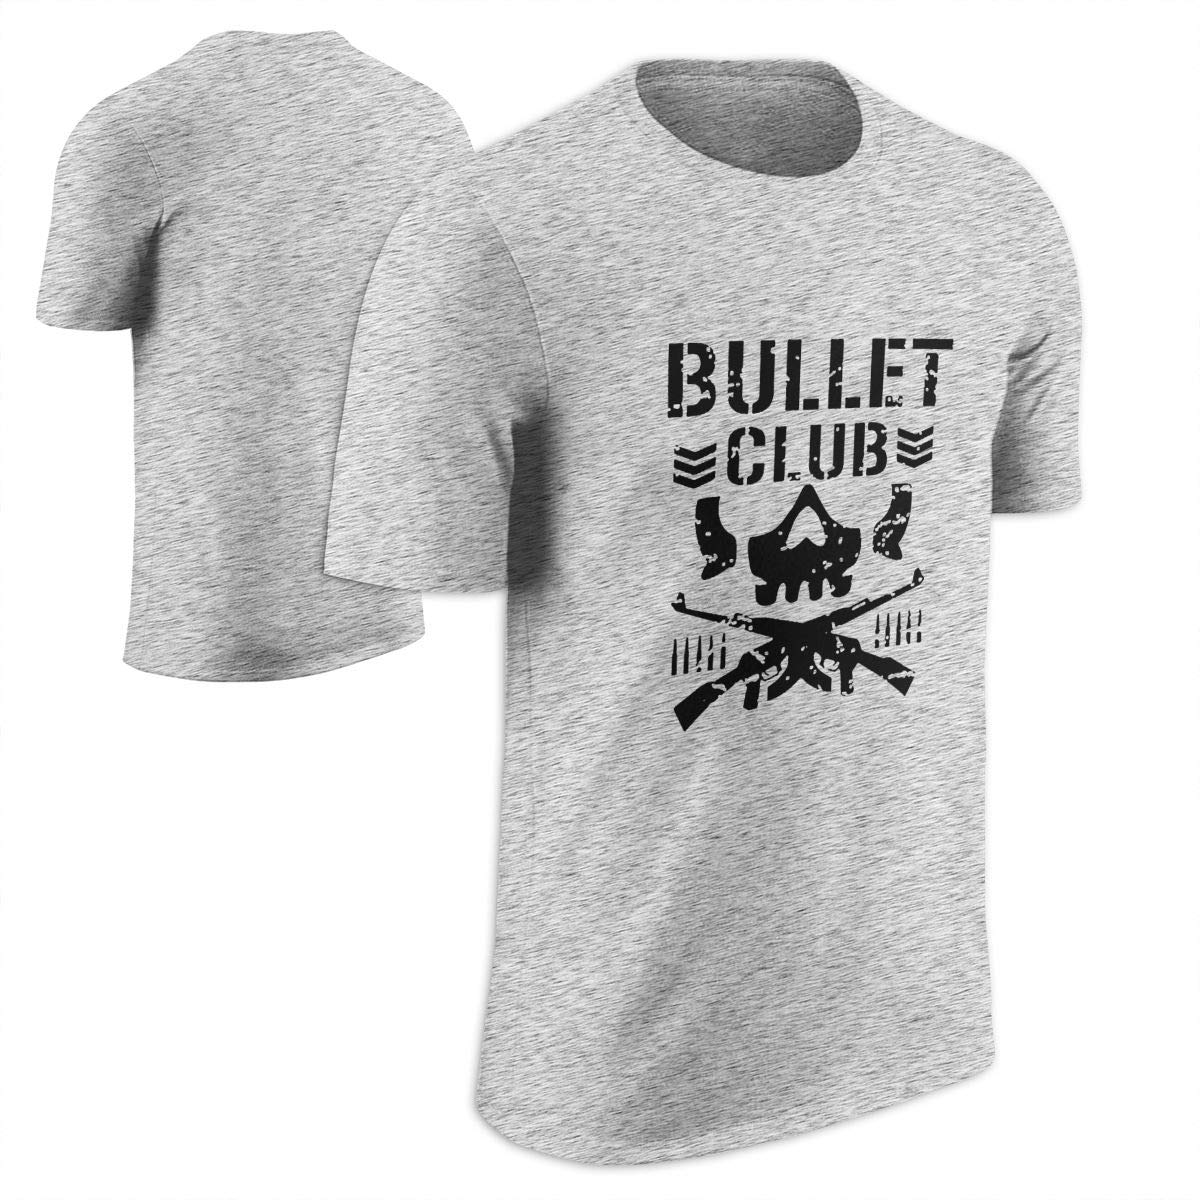 New Way 786 - Unisex T-Shirt Bullet Club Skull Bone Soldier Japan Pro Wrestling XL Black by New Way